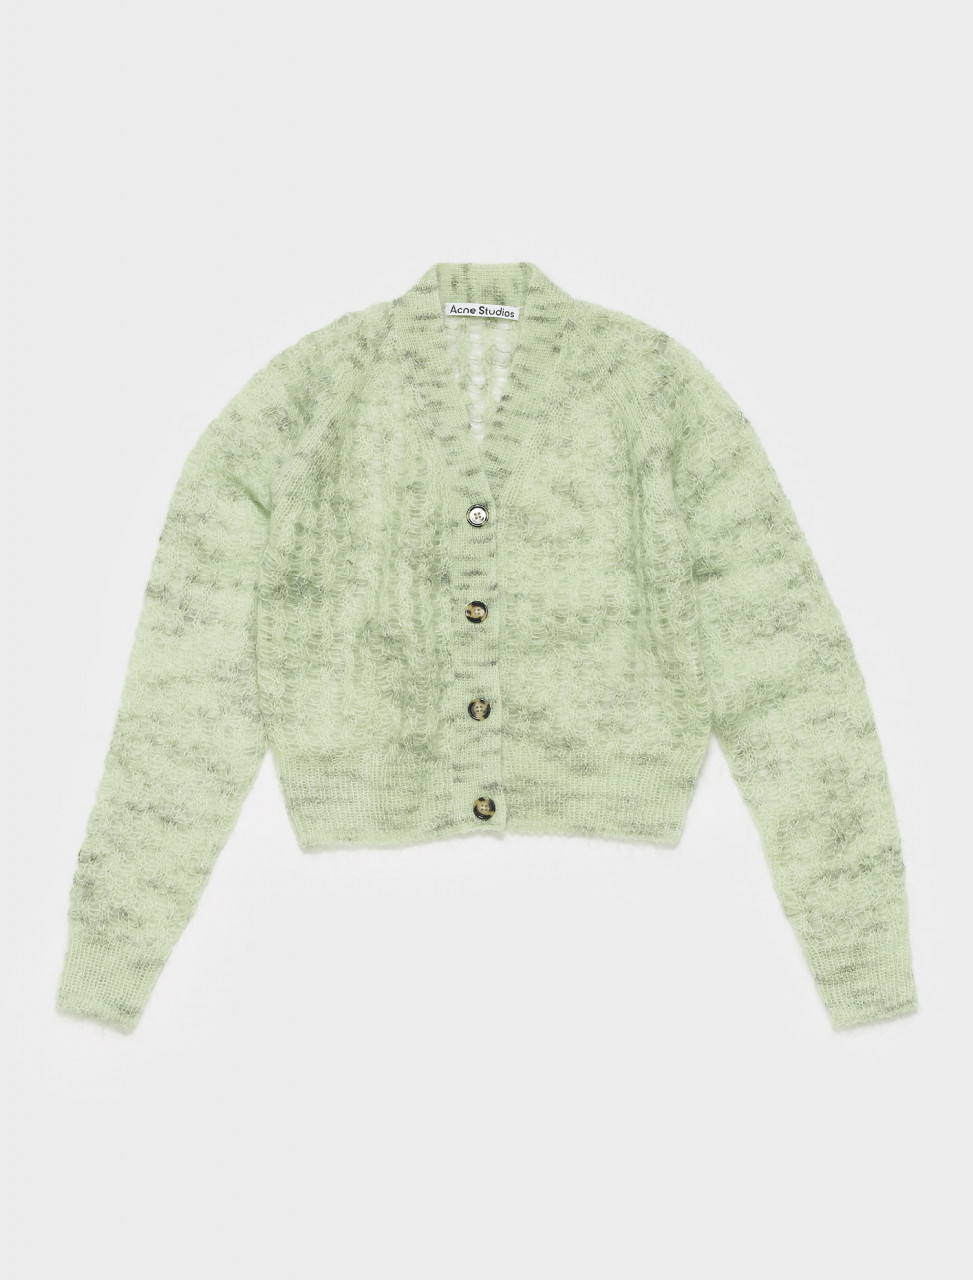 A60260-AB9 ACNE STUDIOS KONNA OPEN MOHAIR CROPPED CARDIGAN IN MINT GREEN